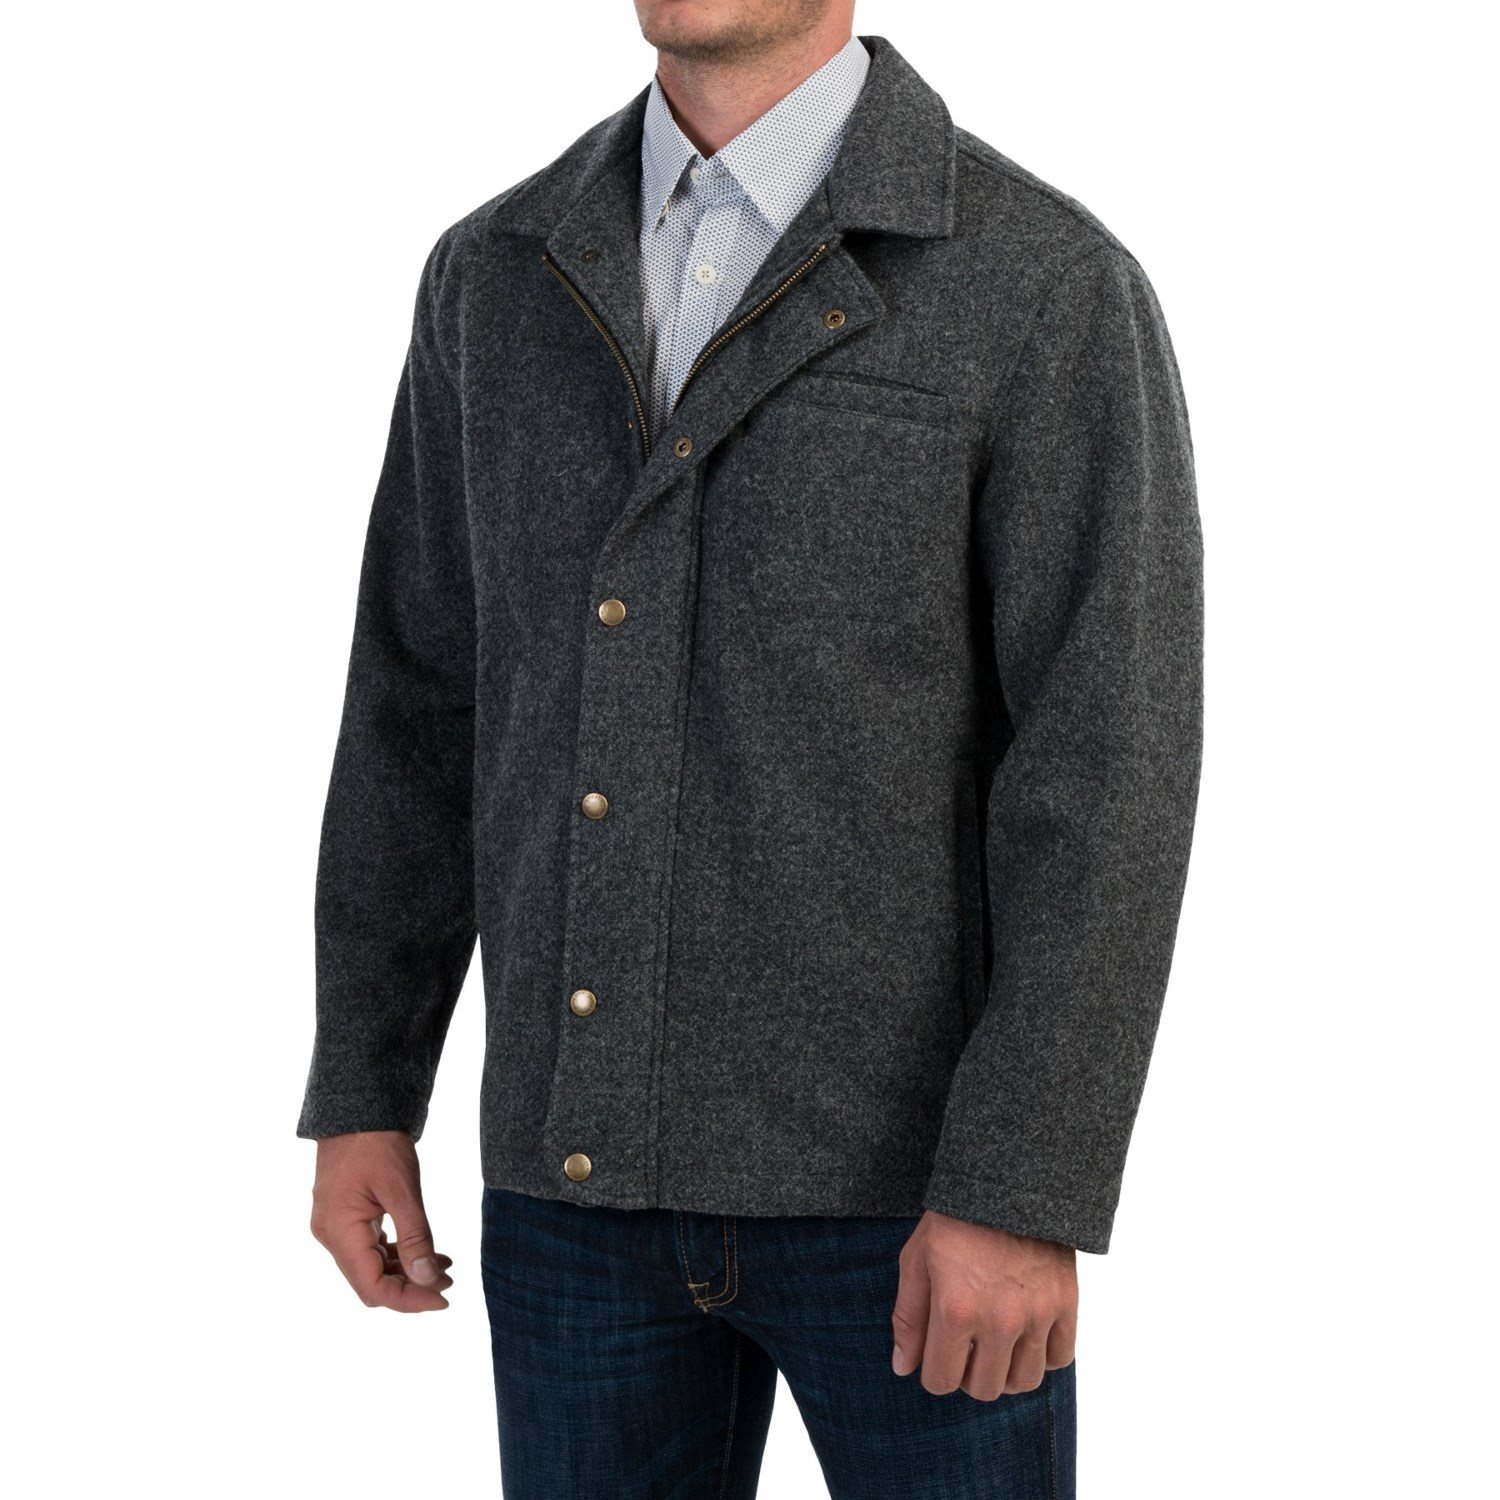 Discover men's jackets and winter coats with ASOS. Shop from a range of styles, from leather jackets, trench and college jackets with ASOS. ASOS DESIGN wool mix overcoat in light gray. $ New Look fleece lined denim jacket in washed black. $ ASOS DESIGN heavyweight textured duster jacket .